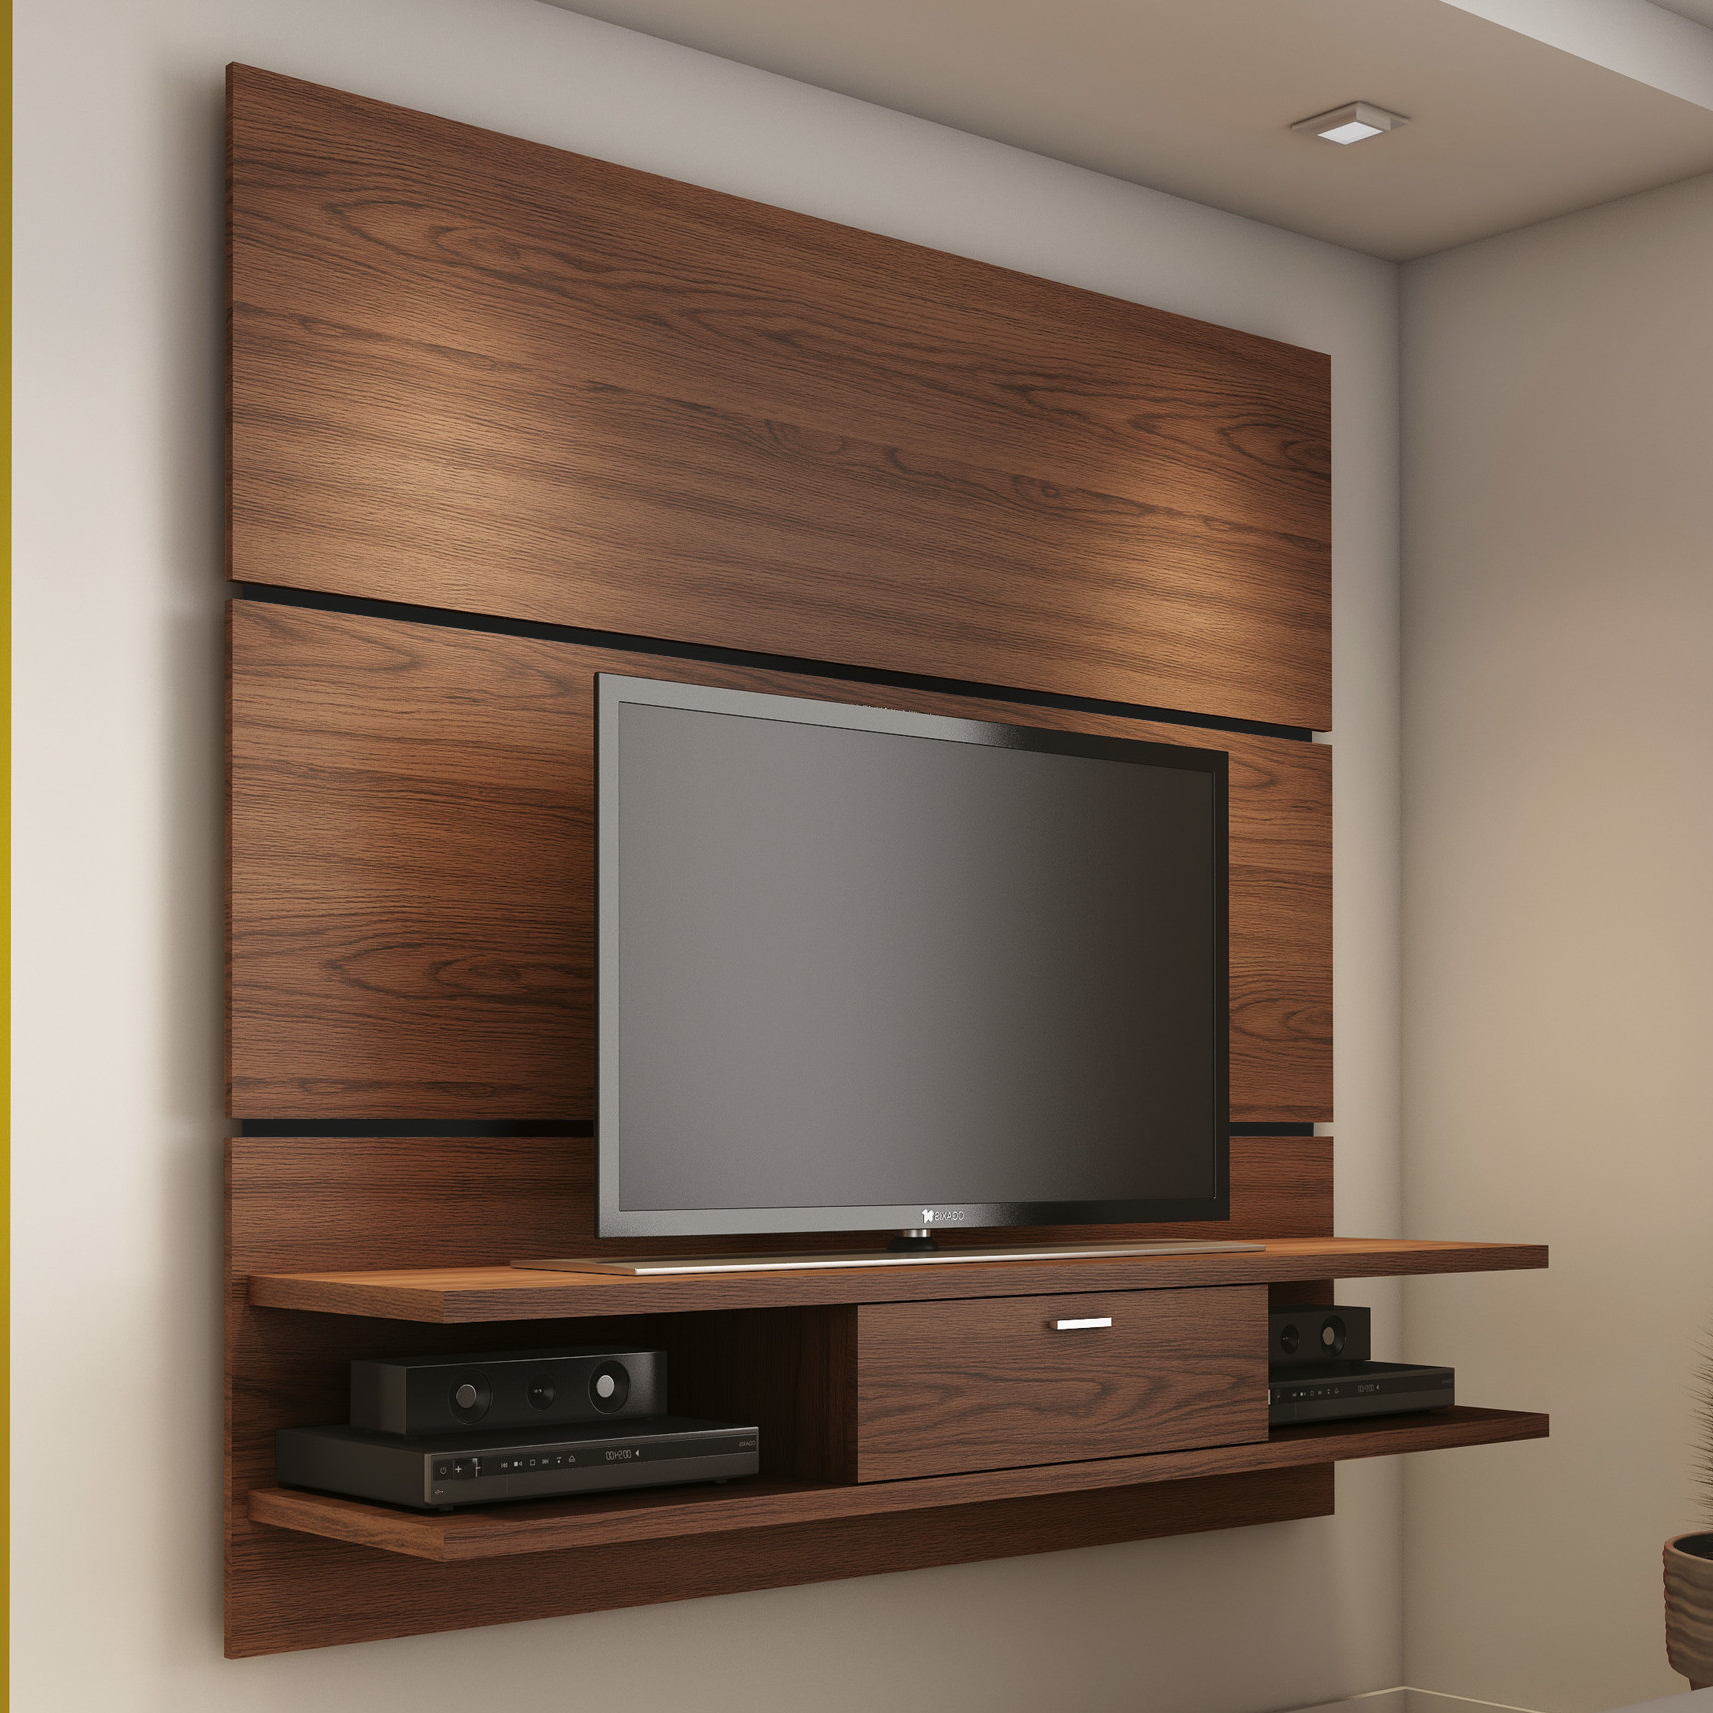 Newest Wall Mounted Tv Stands With Shelves Inside Tv Wall Mount With Shelf Target Full Motion Swivel Stand Shelves (View 10 of 20)